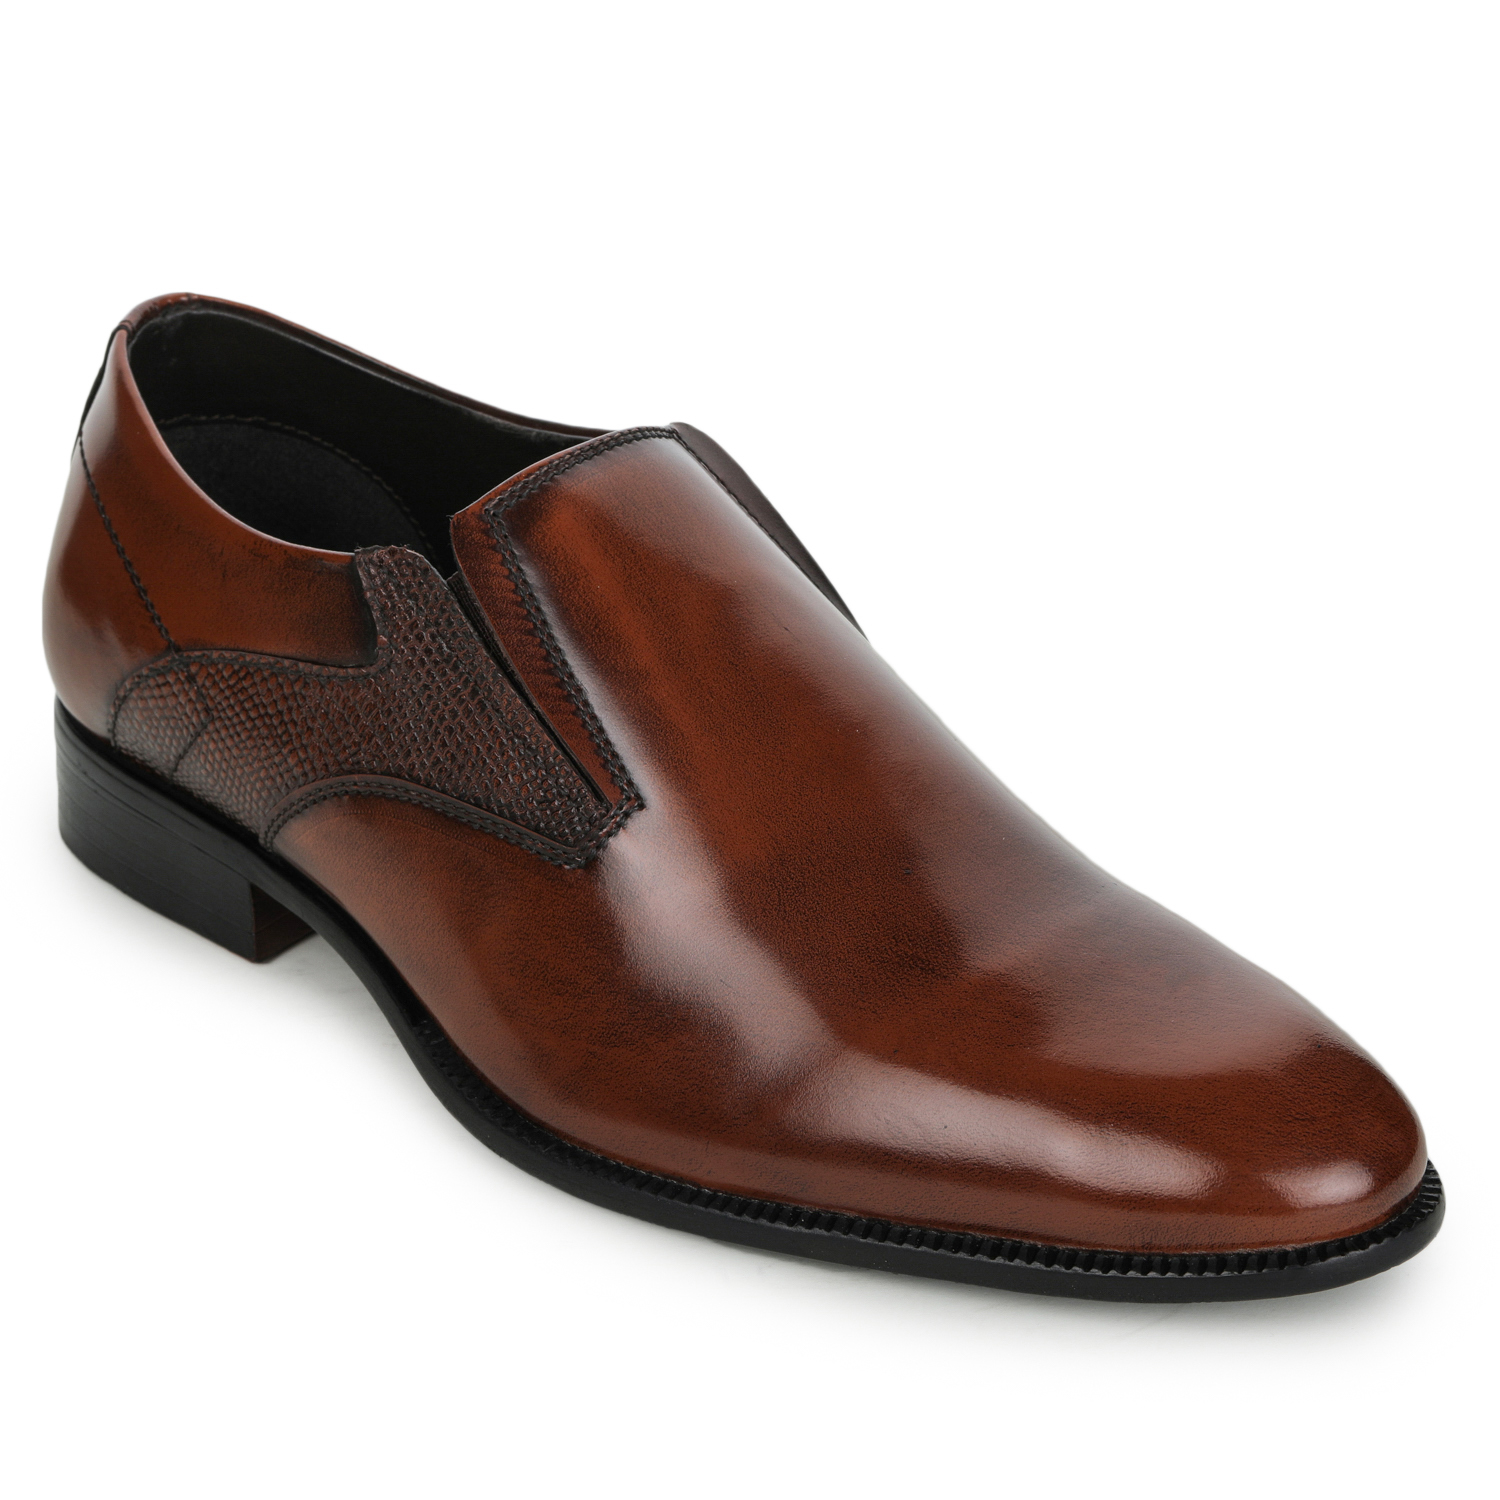 Liberty | Liberty Healers Brown Formal Oxfords Shoes SSL-03_Brown For - Men